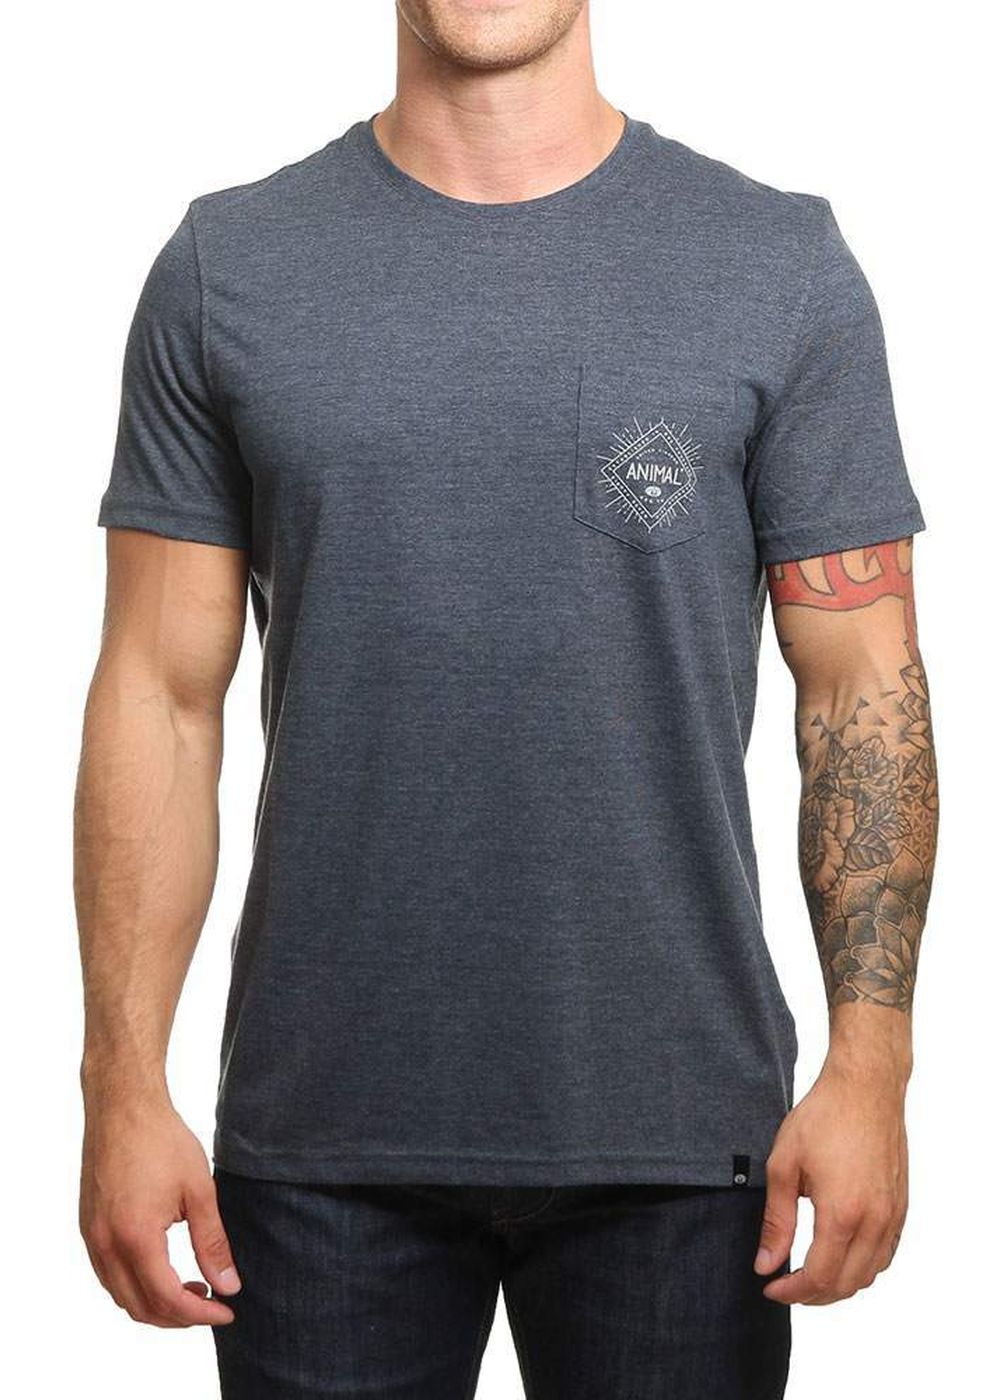 animal-crafted-tee-dark-navy-marl